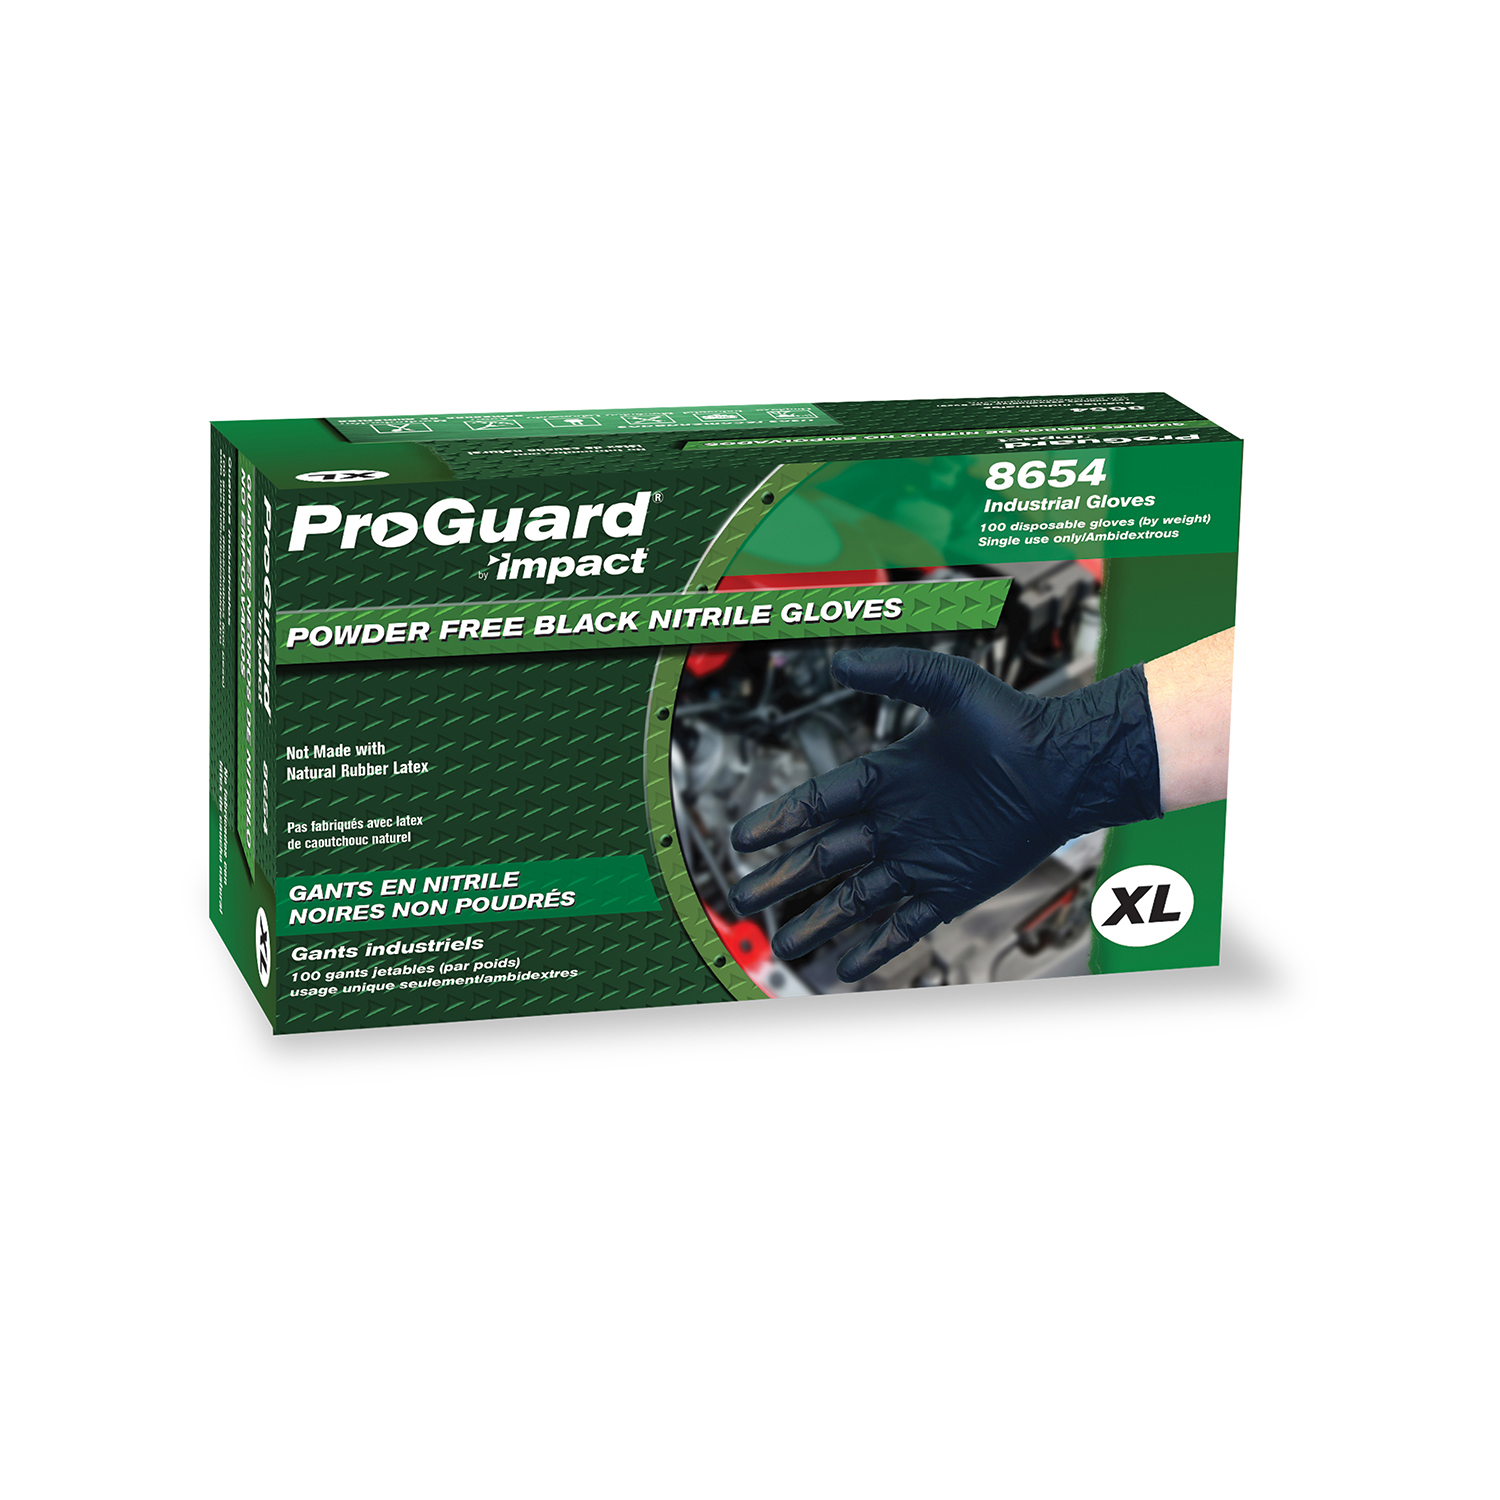 Impact Products 8654M disposable gloves